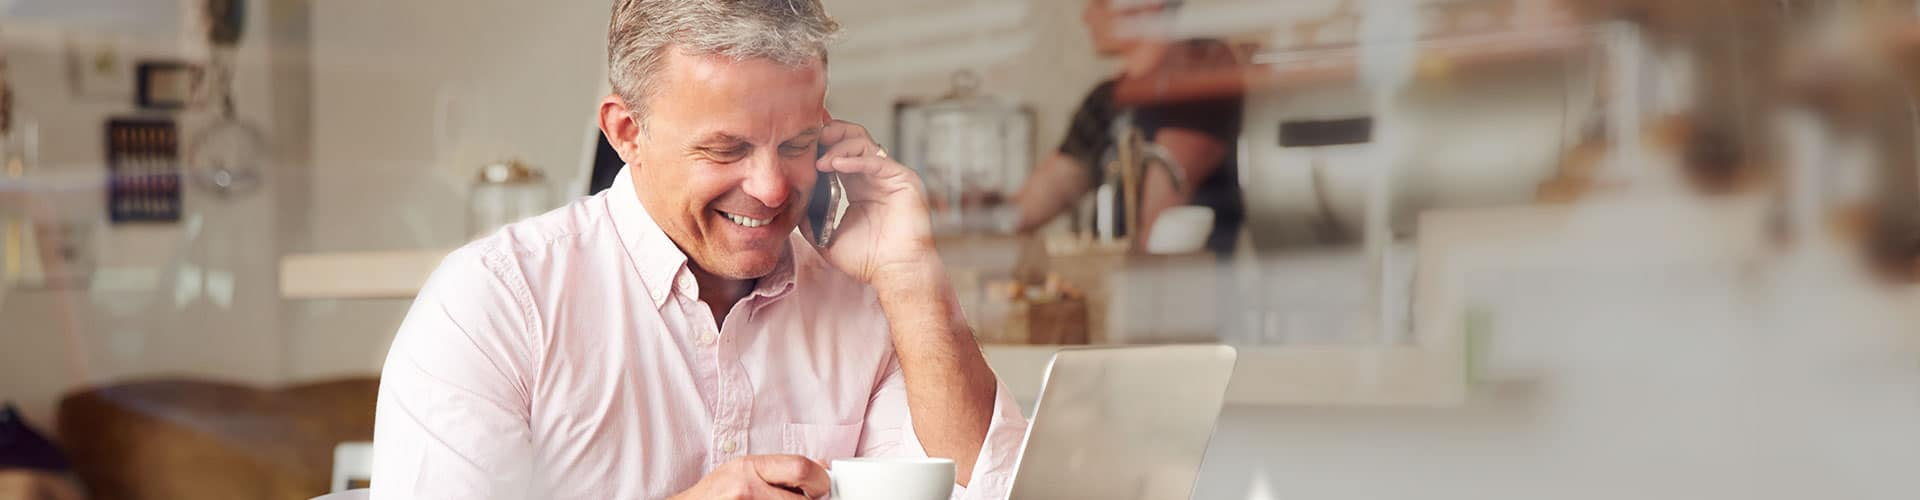 man talking on phone while looking at computer